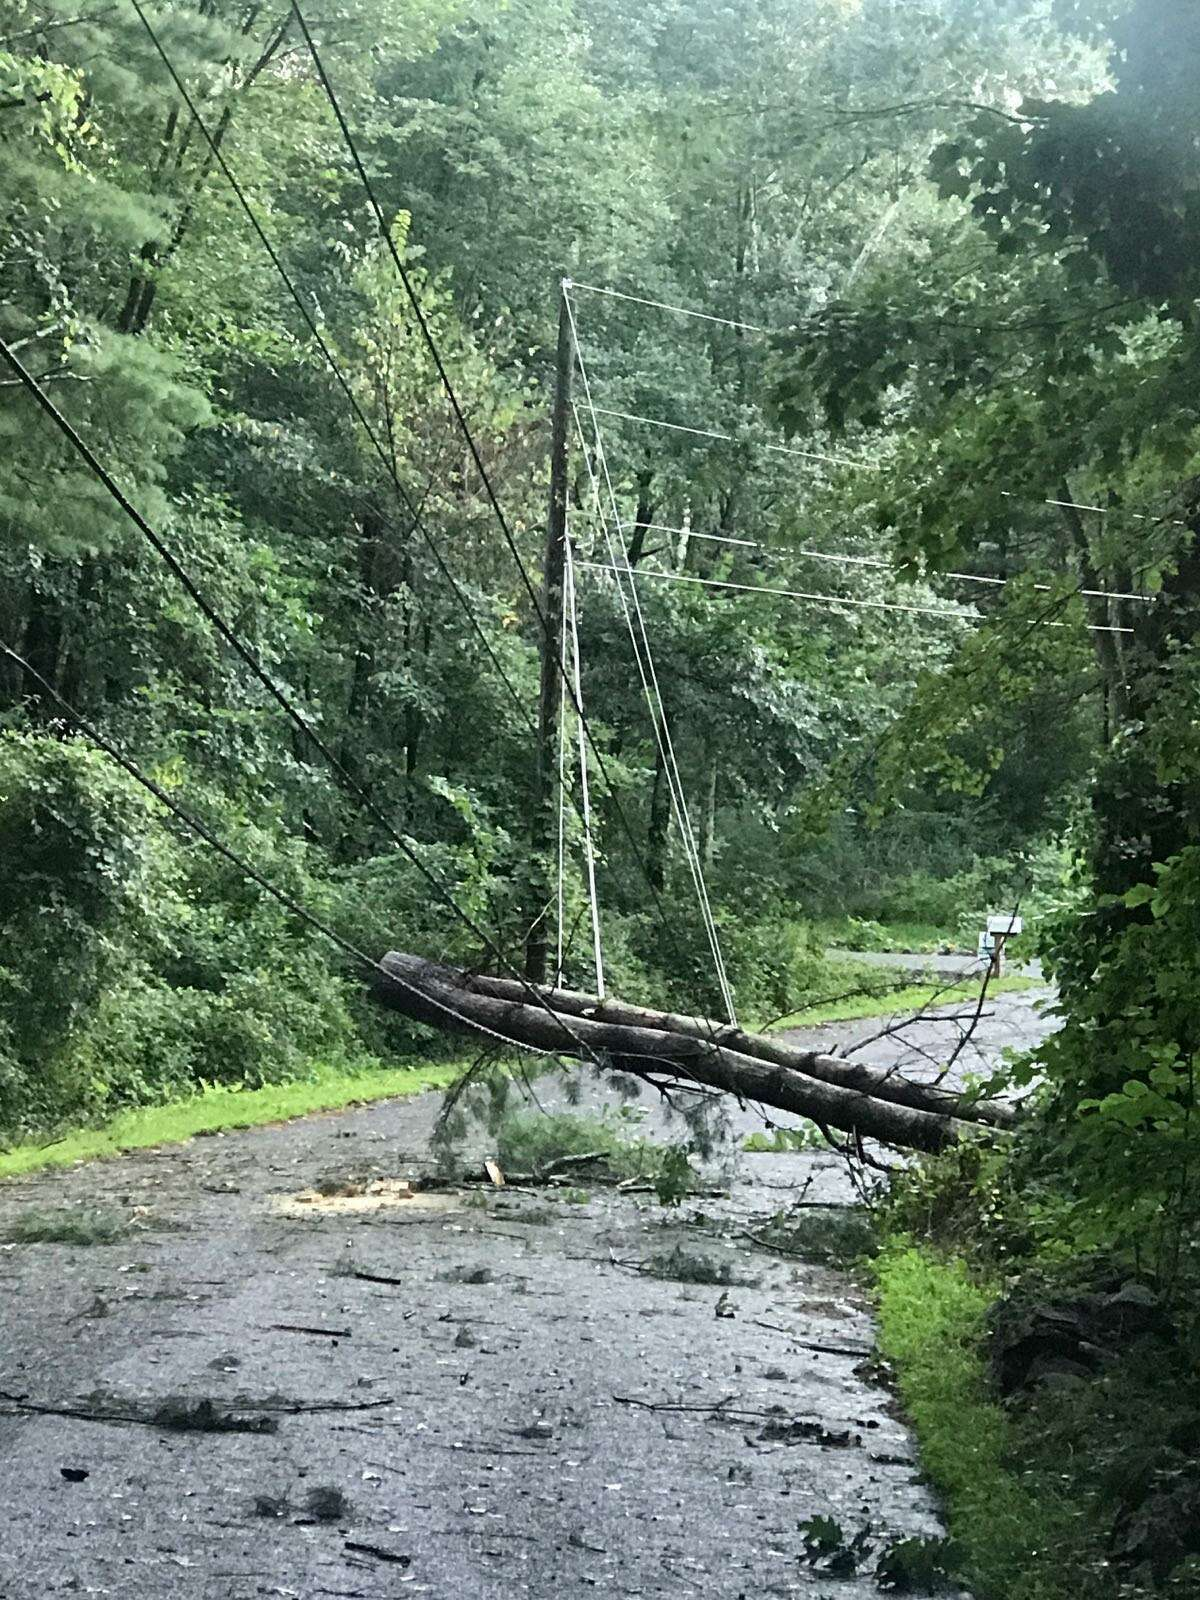 Tropical Storm Isaias wrecked havoc on much of Connecticut, including the Greater New Milford area, bringing heavy rains and winds that downed trees and power lines. Above is damage on Brinsmade Lane in Sherman.